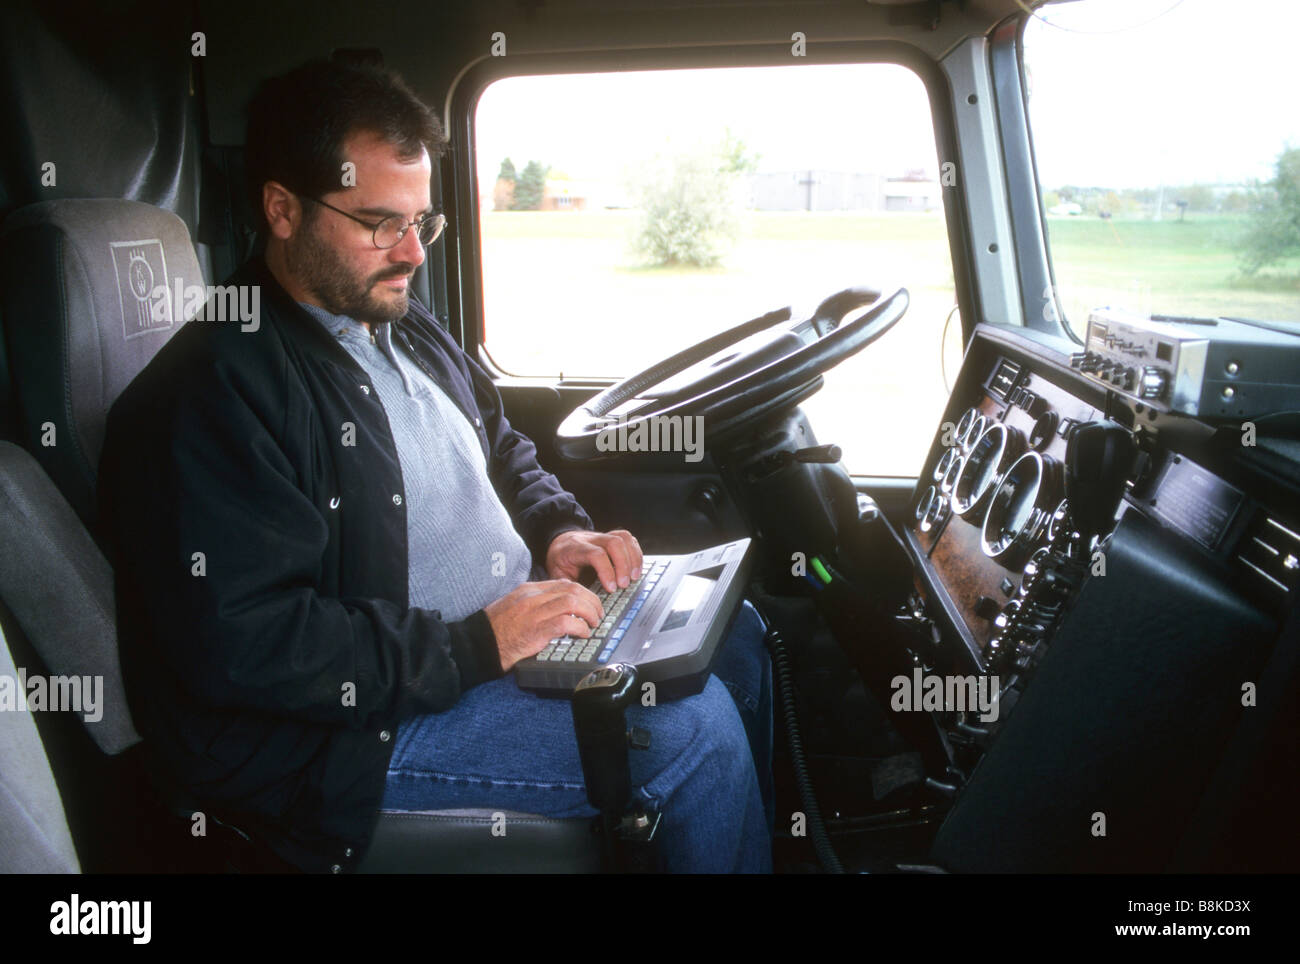 truck driver computer steer wheel cab plan route track safe safety modern communication contact speed fuel cargo Stock Photo